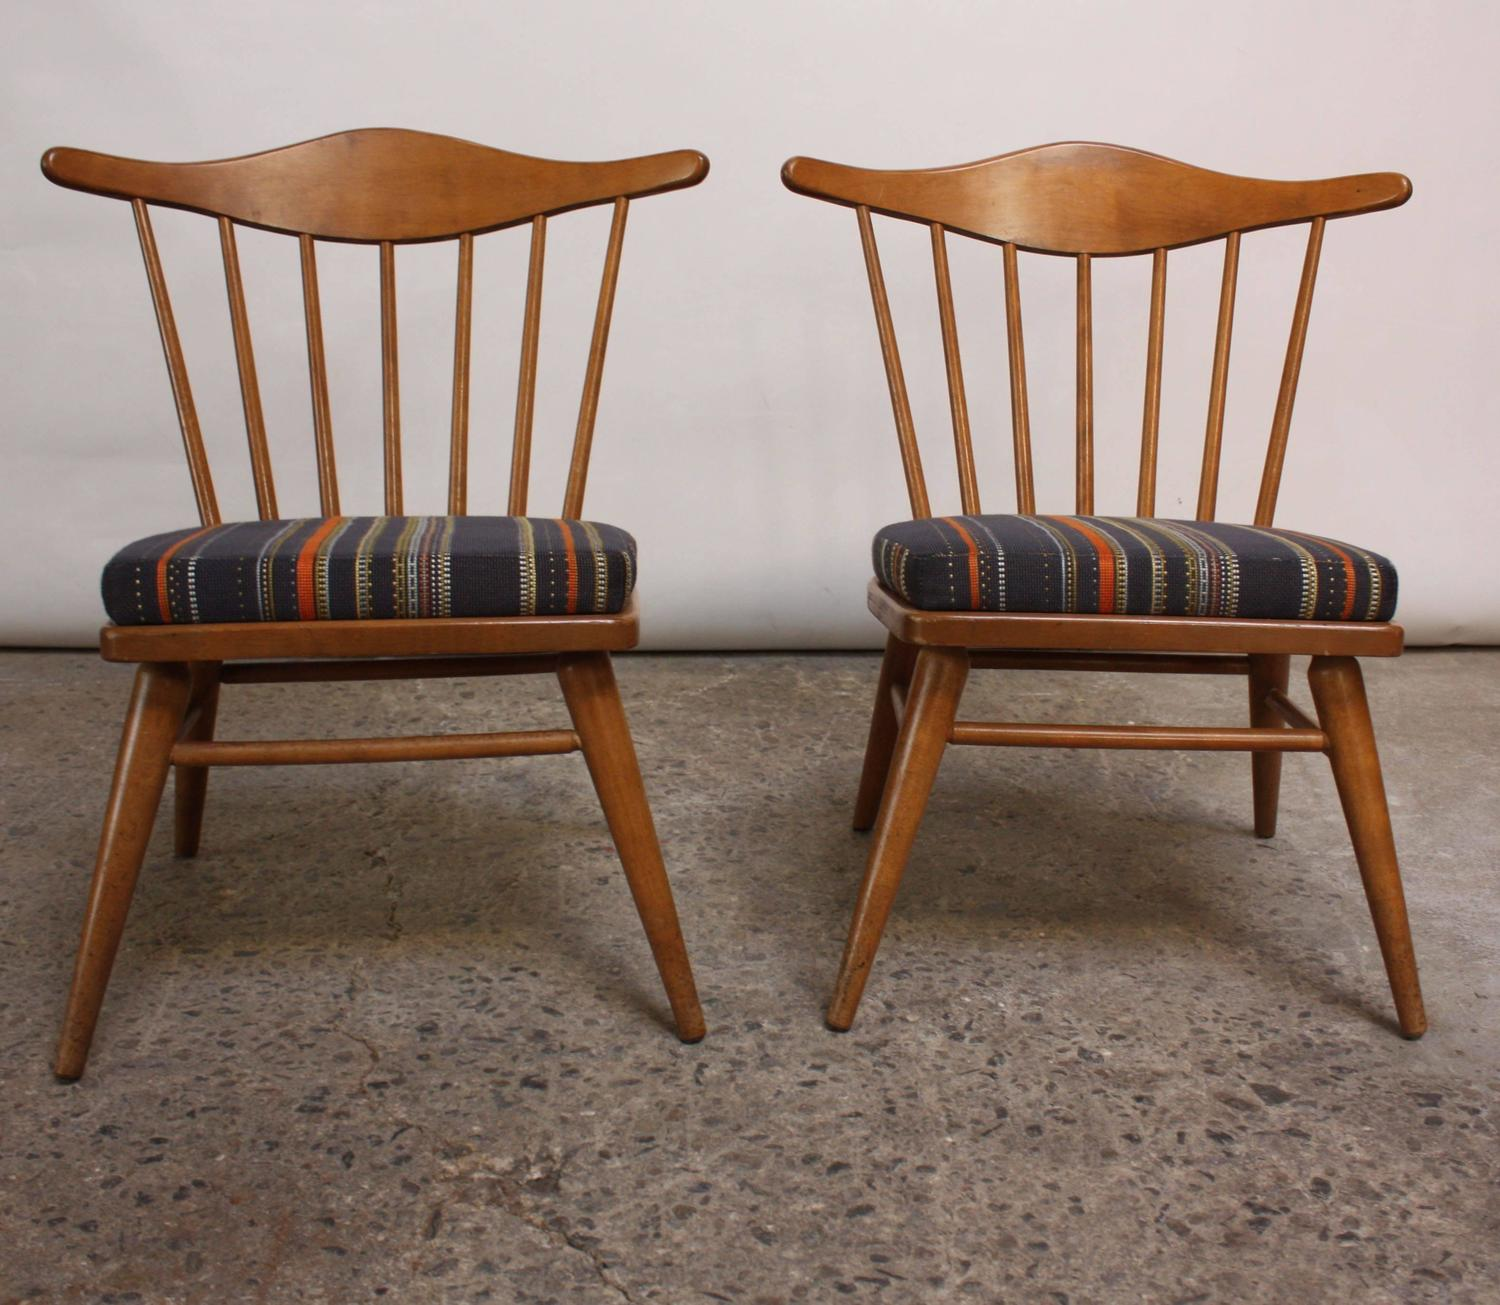 Home / Shop / Chairs / Ottomans / Pair Of Conant Ball Spindle Back Accent  Chairs Attributed To Russel Wright